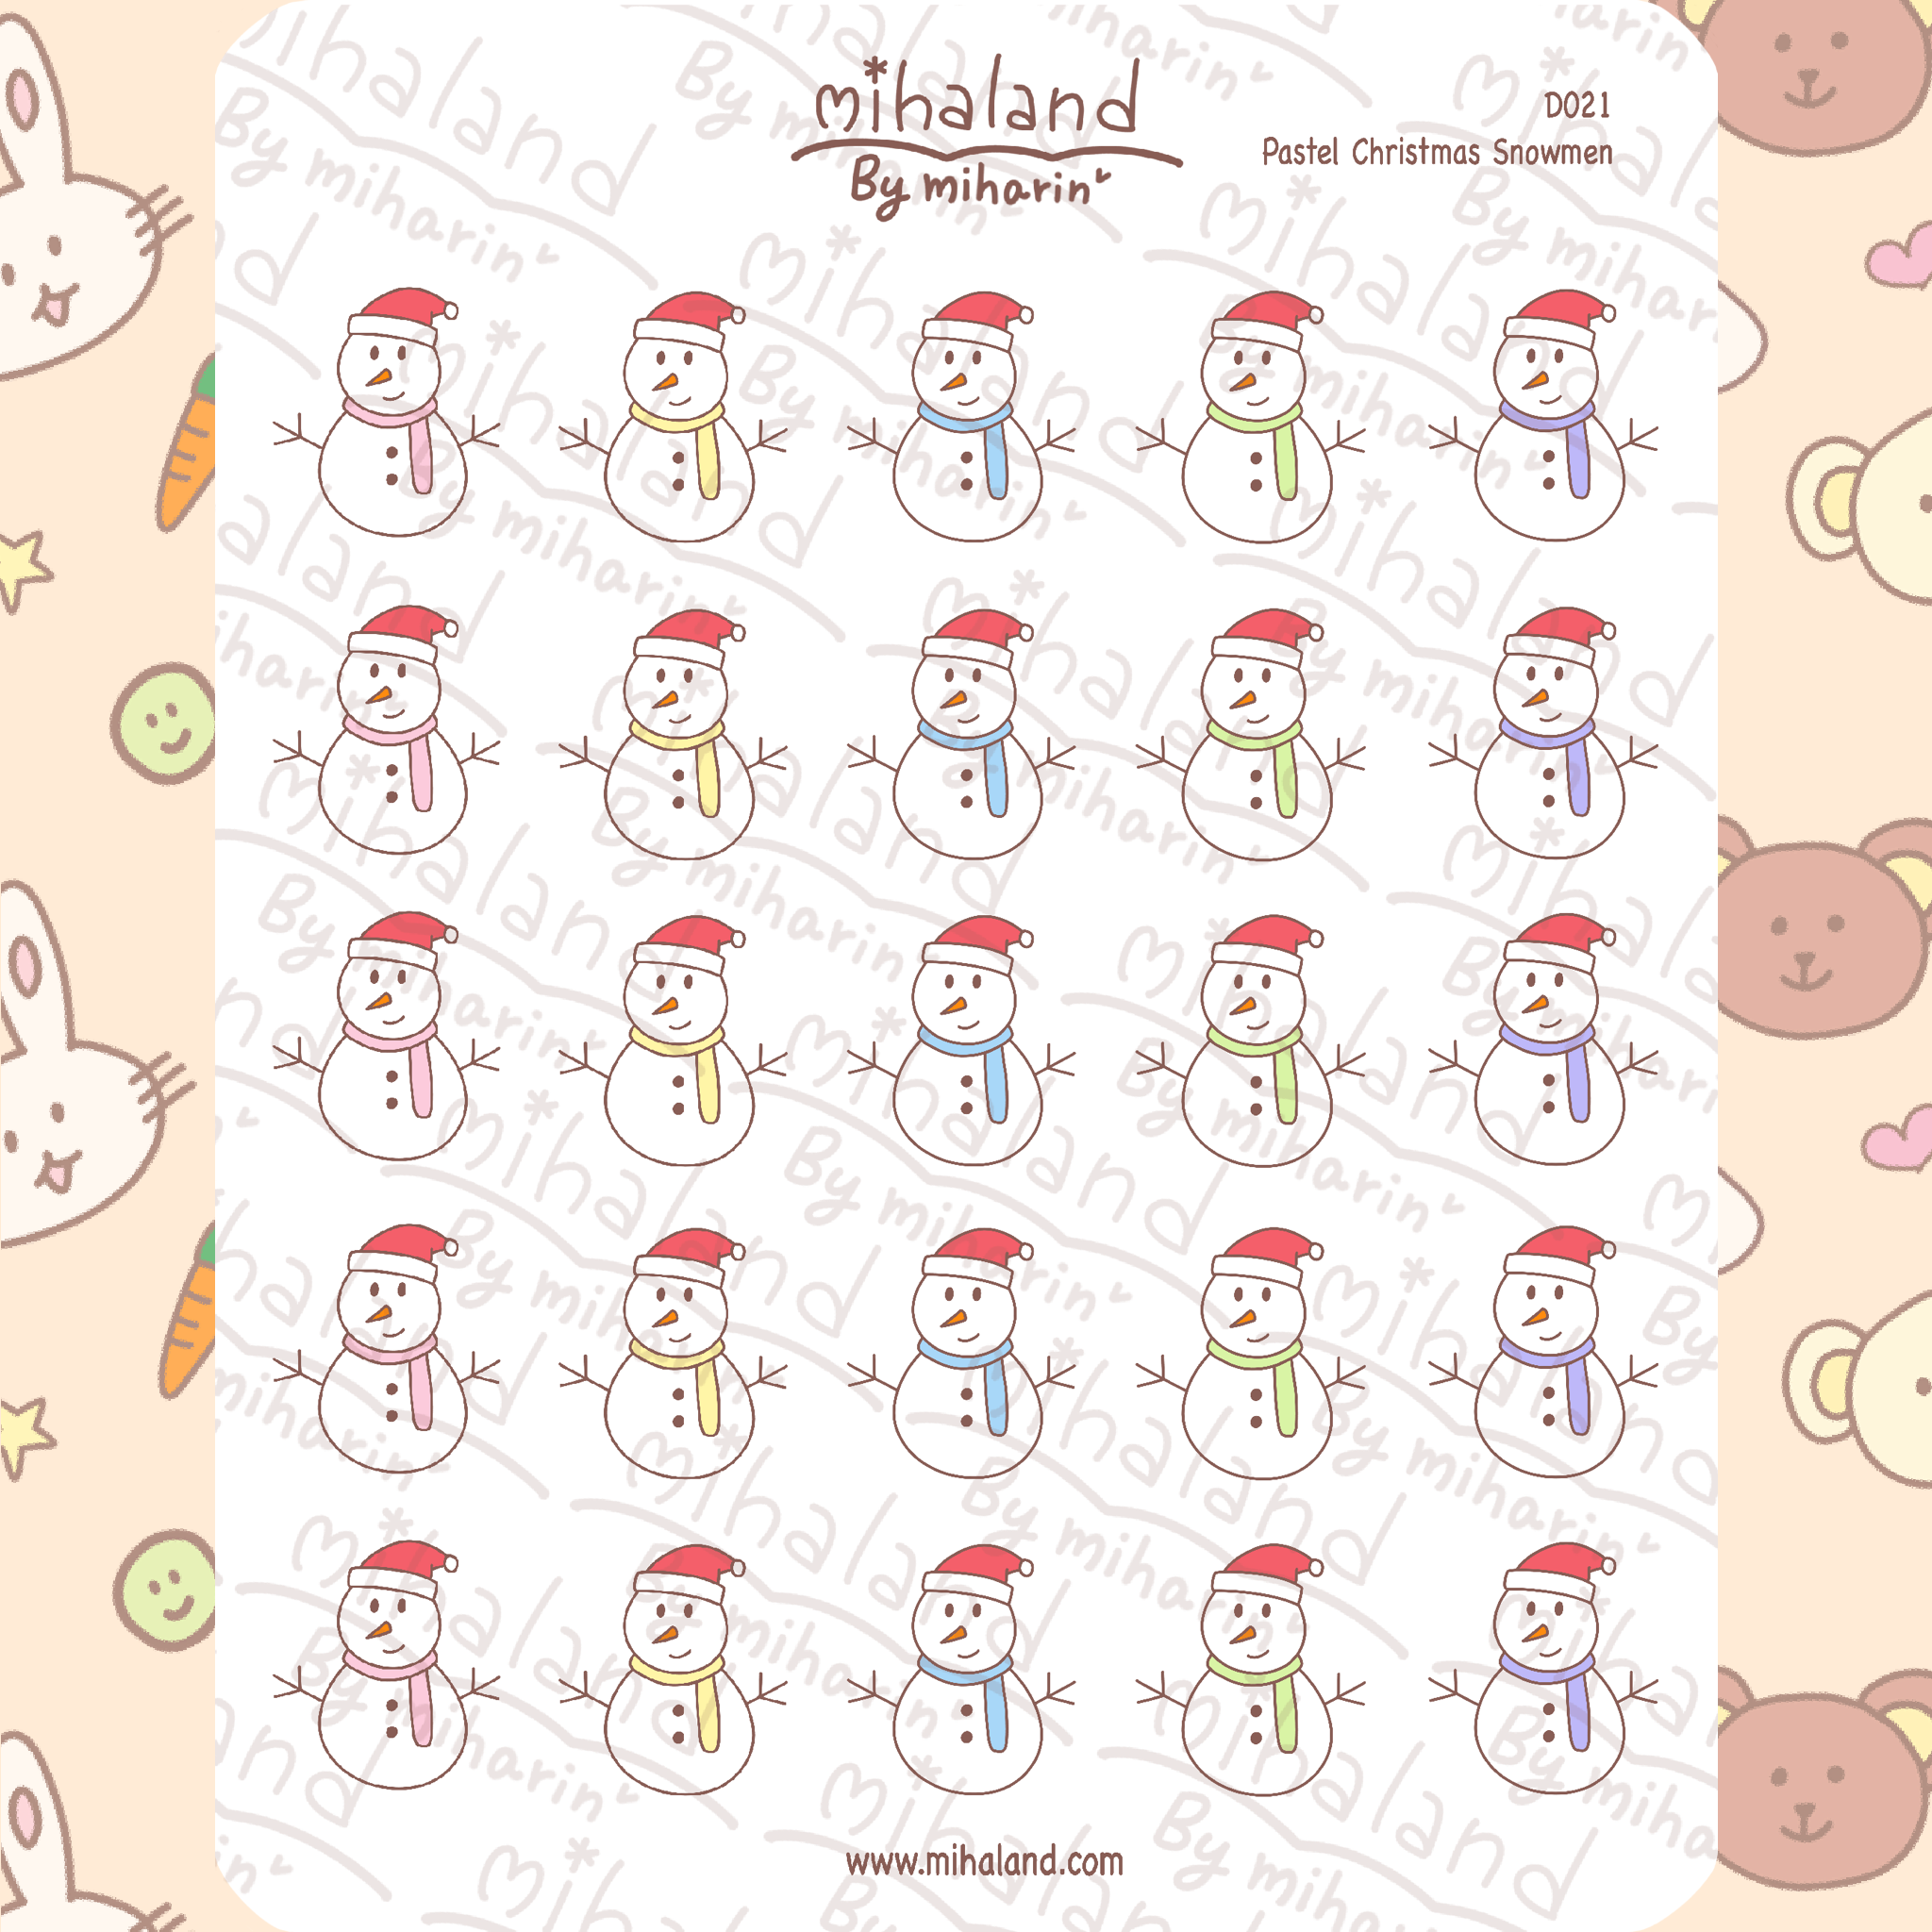 mihaland - Pastel Christmas Snowmen Planner Stickers (D021)